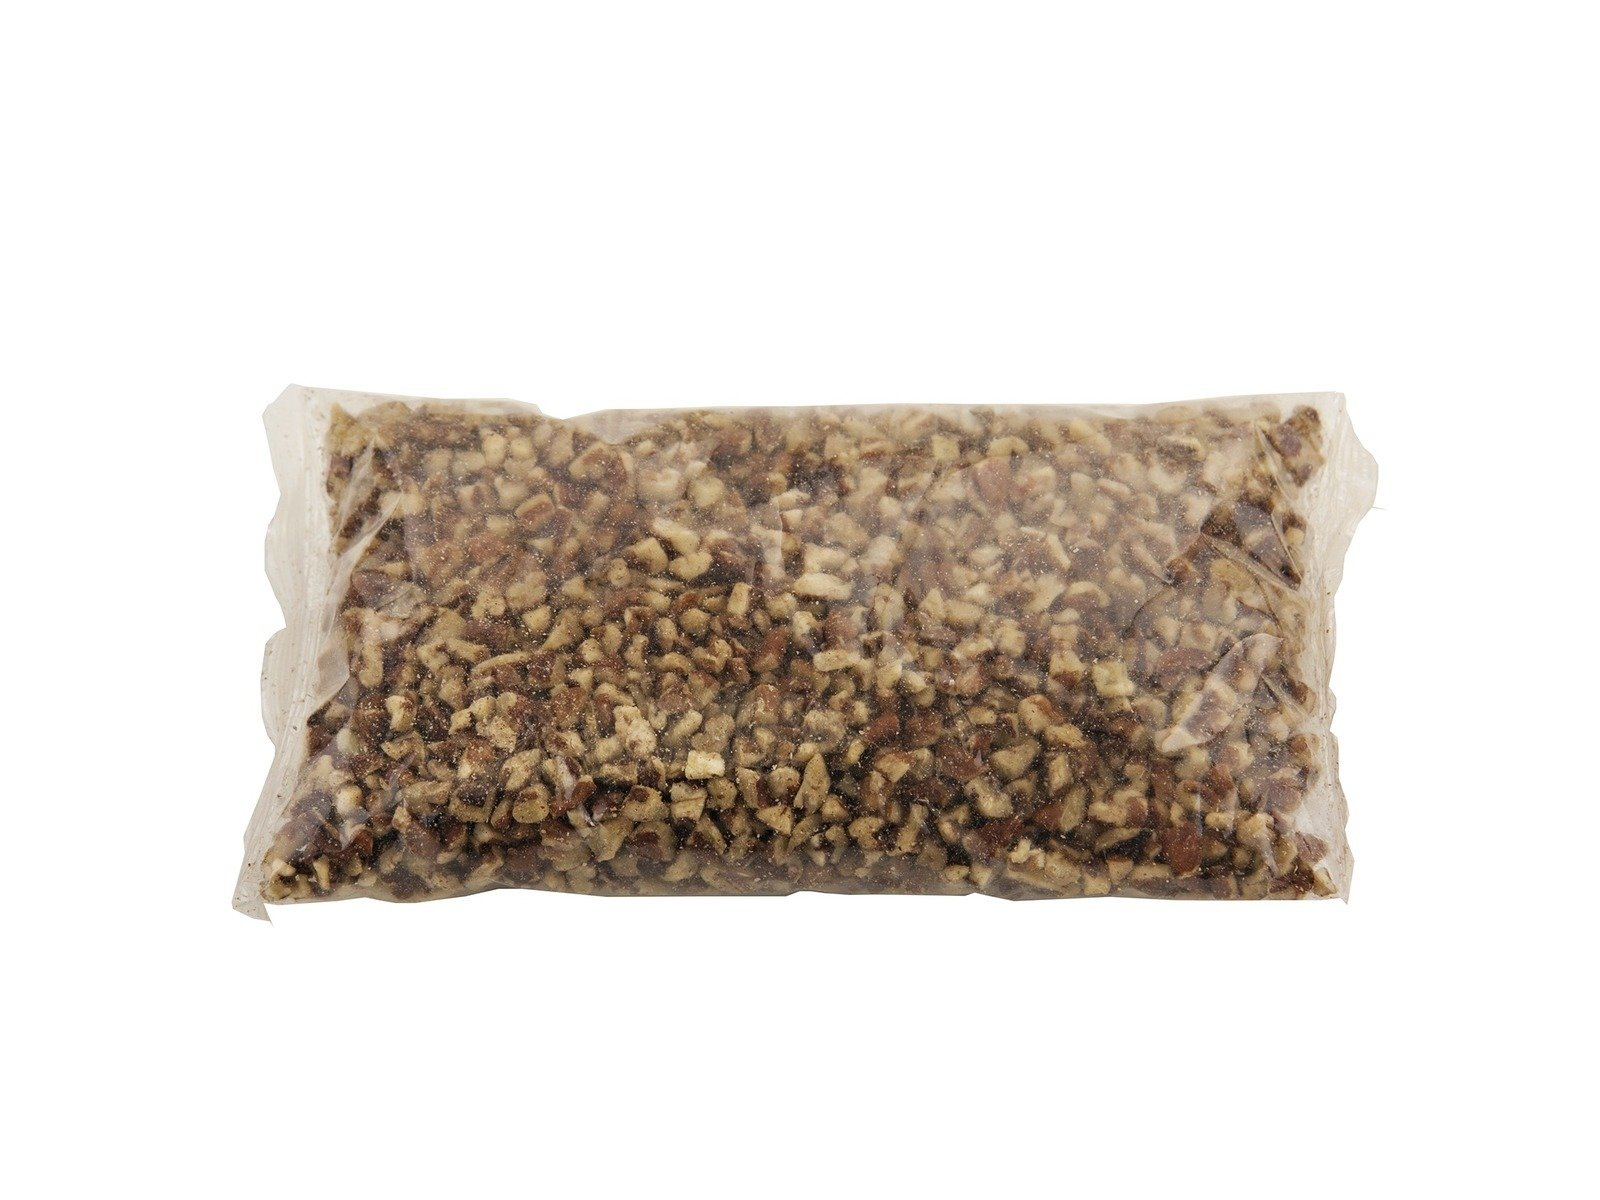 Choice Medium Pecan Pieces 12/10oz Bags